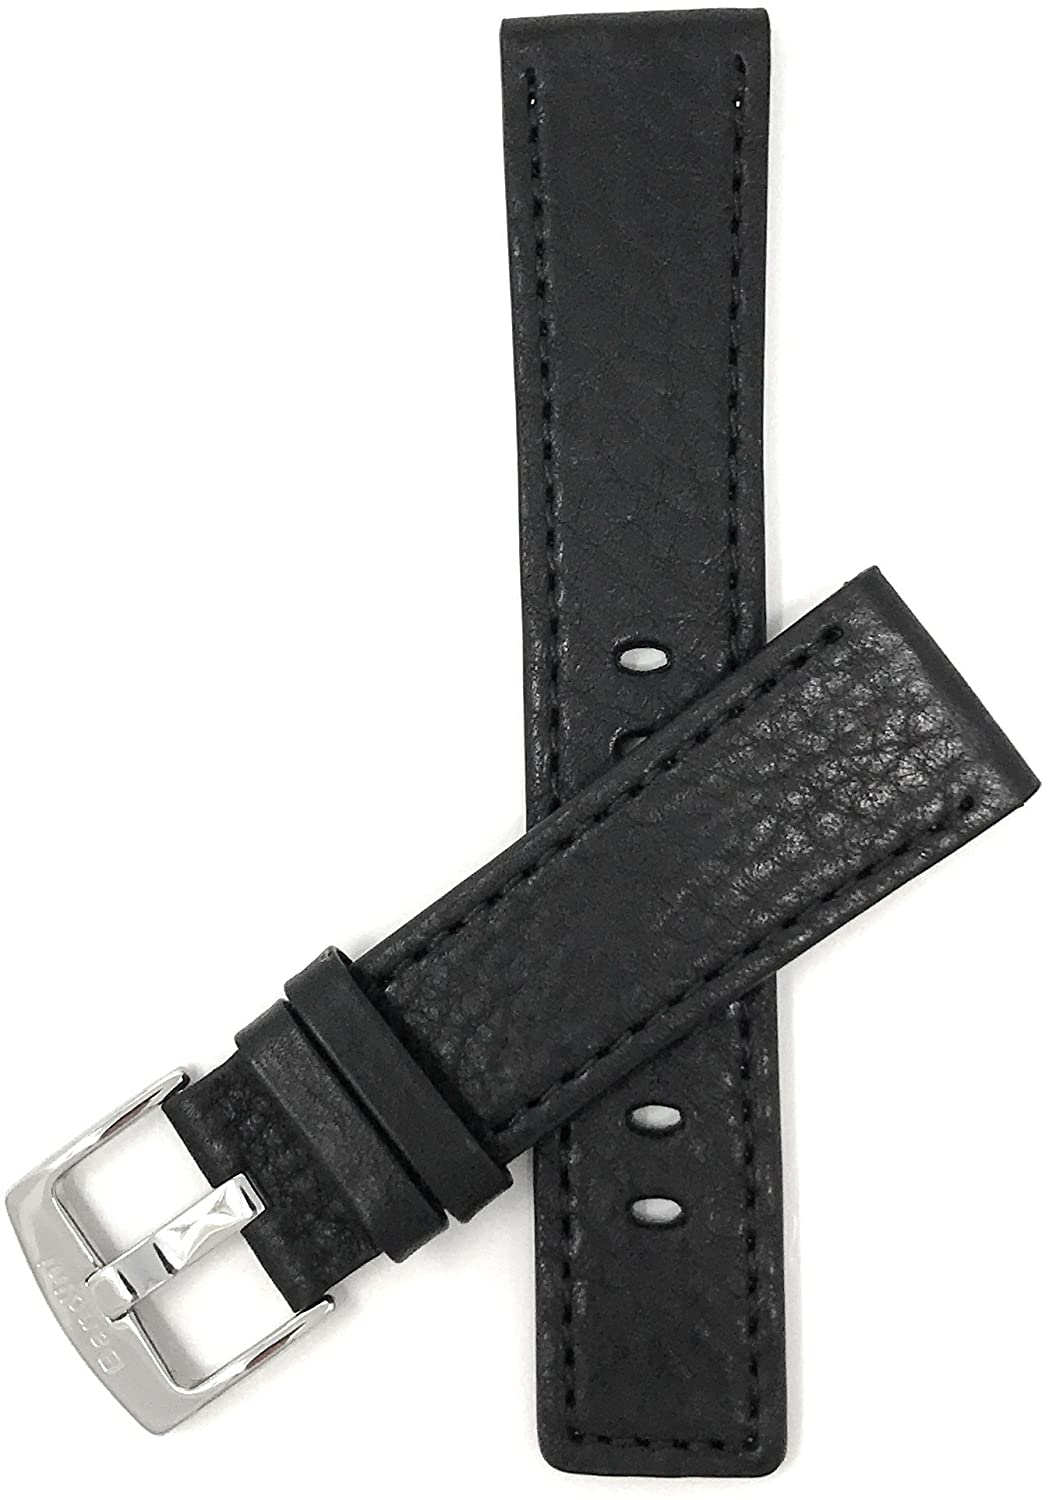 Bandini Mens Leather Watch Band Strap - Square Tip - with or Without Stitch - 2 Colors - 22mm, 24mm, 26mm, 28mm, 30mm